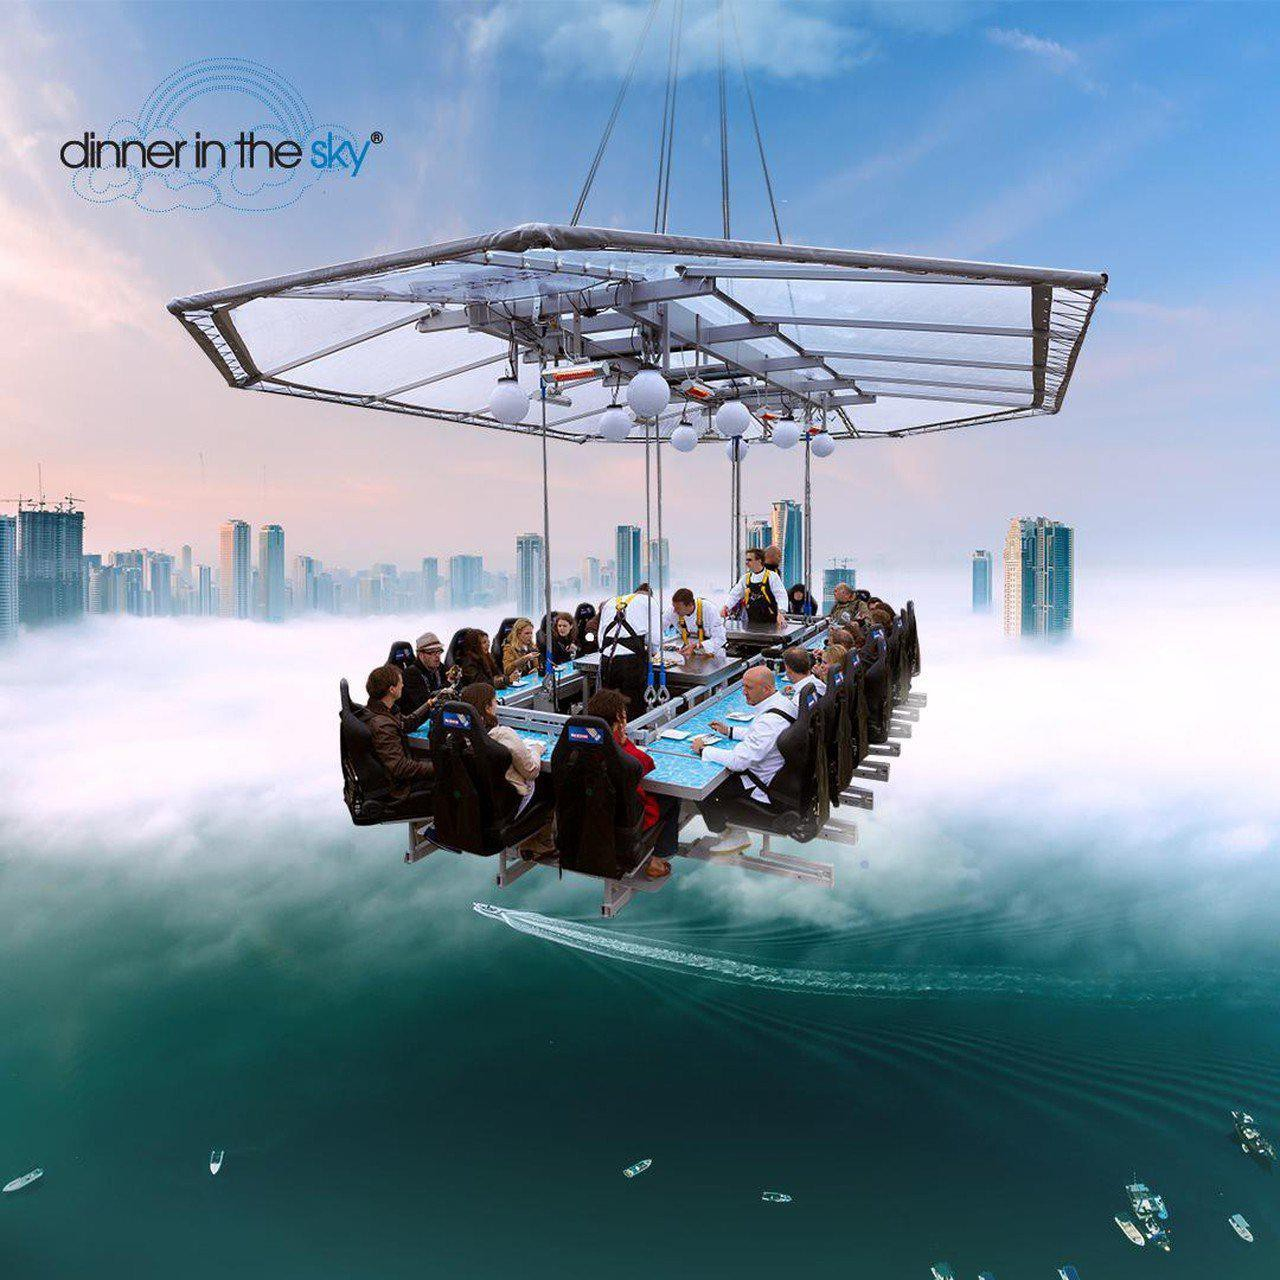 Hannover corporate event venues Unusual Dinner in the sky image 0